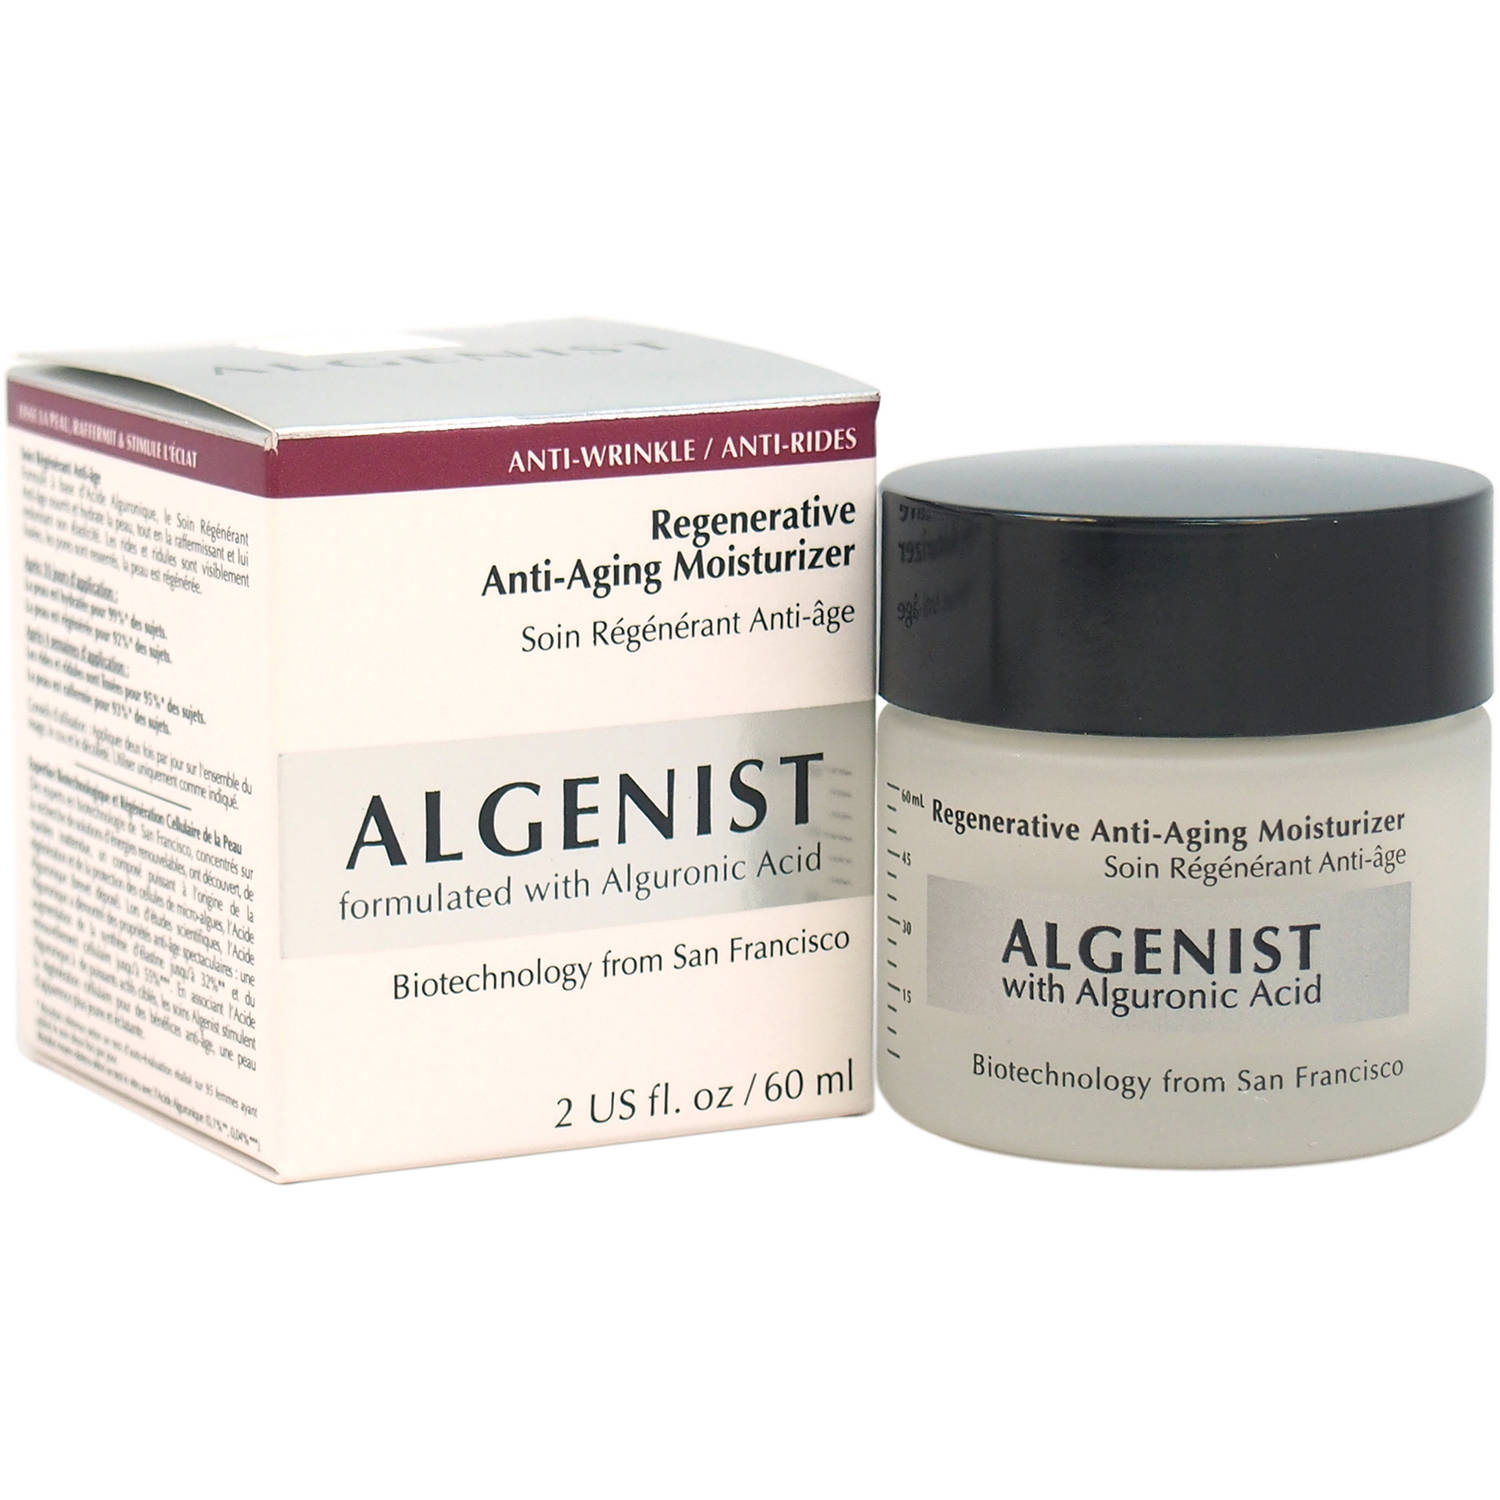 Algenist for Women Regenerative Anti-Aging Moisturizer, 2 fl oz